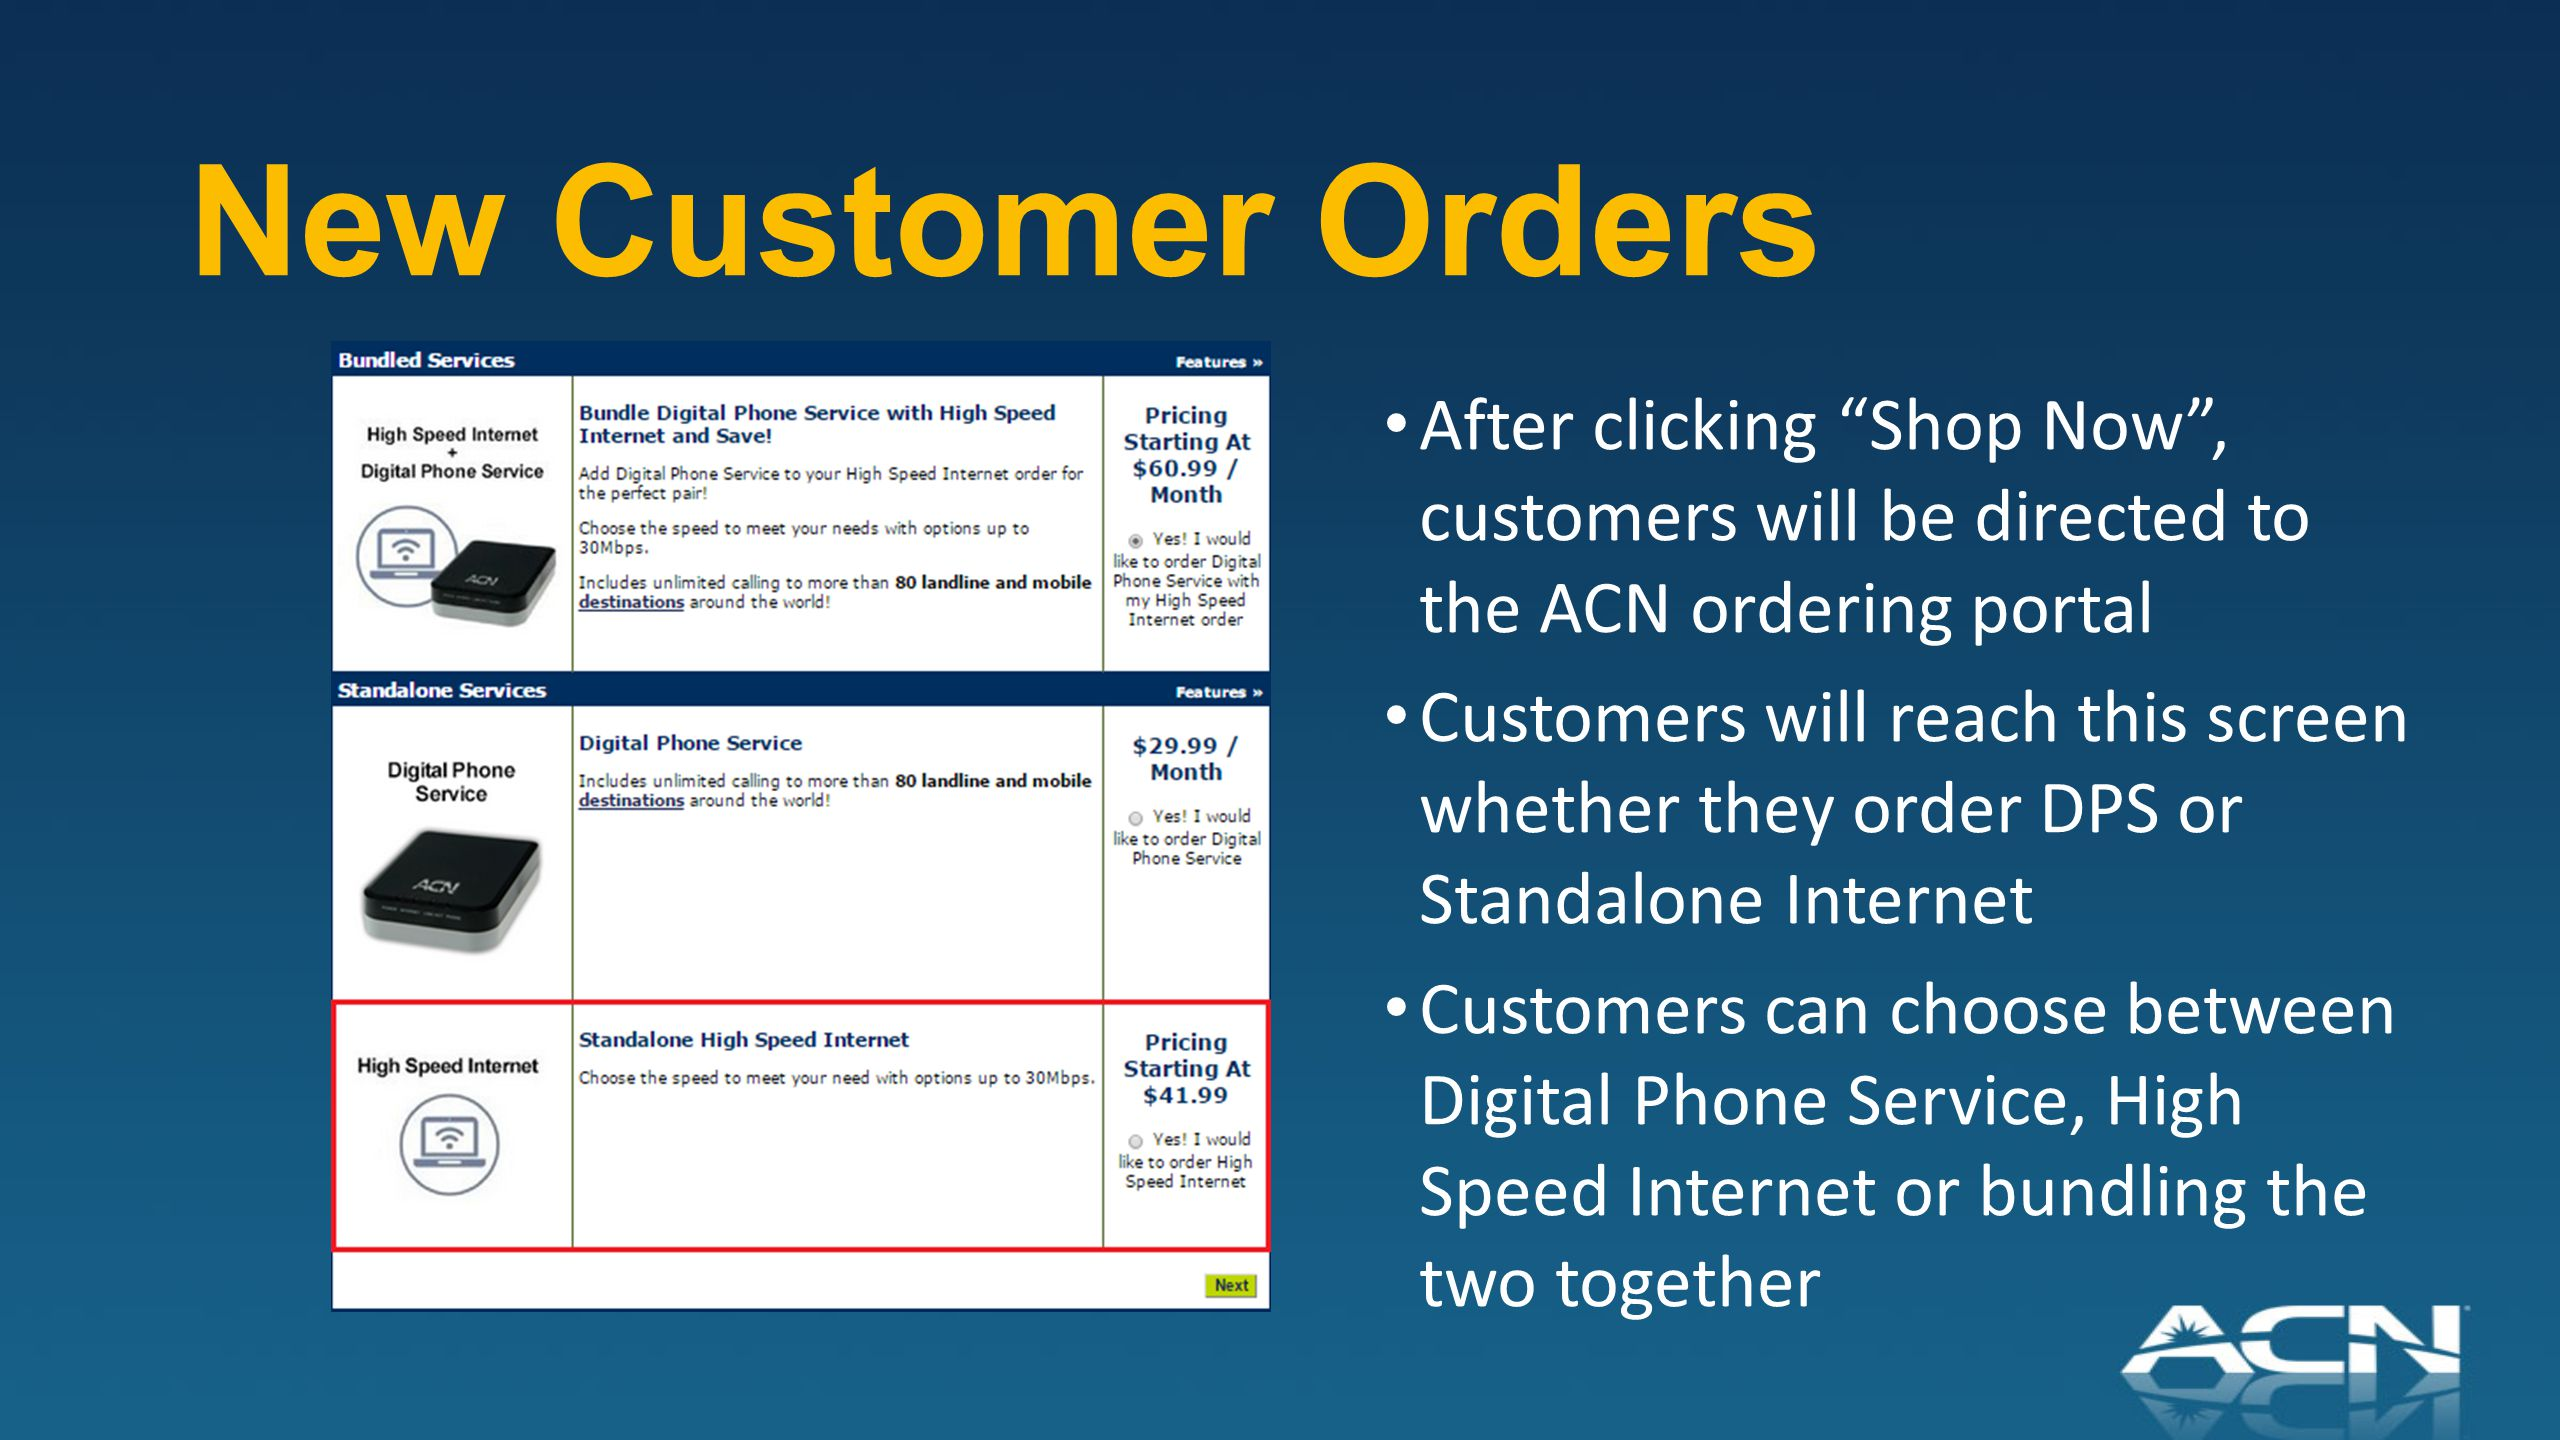 New Customer Orders After clicking Shop Now , customers will be directed to the ACN ordering portal Customers will reach this screen whether they order DPS or Standalone Internet Customers can choose between Digital Phone Service, High Speed Internet or bundling the two together